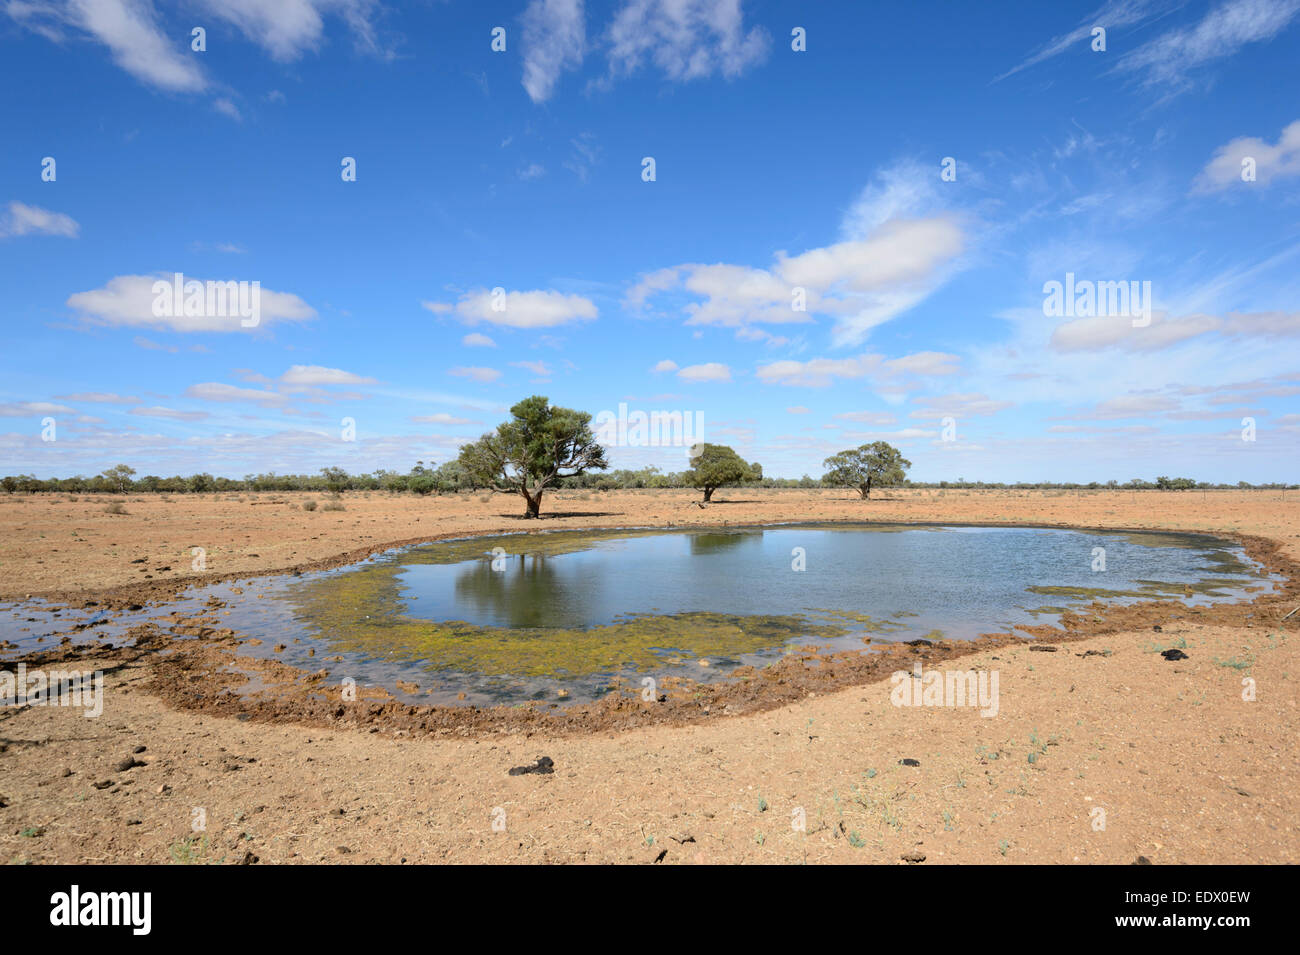 Slimy Watering Hole for Cattle along the Oodnadatta Track, South Australia, SA, Australia - Stock Image